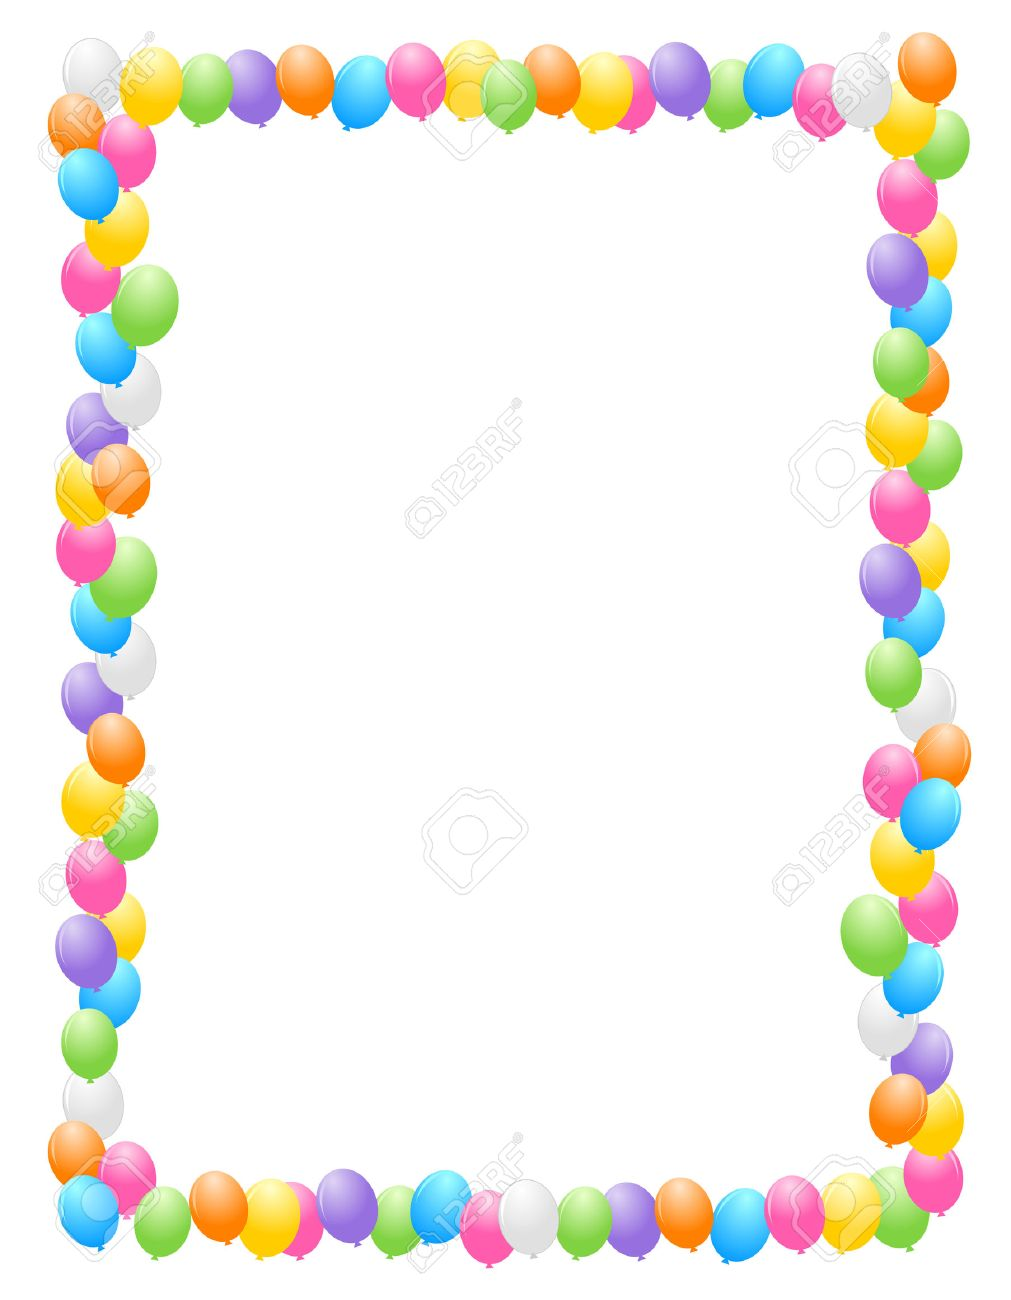 Colorful balloons border frame illustration for birthday cards colorful balloons border frame illustration for birthday cards and party backgrounds stock vector 38545900 thecheapjerseys Images